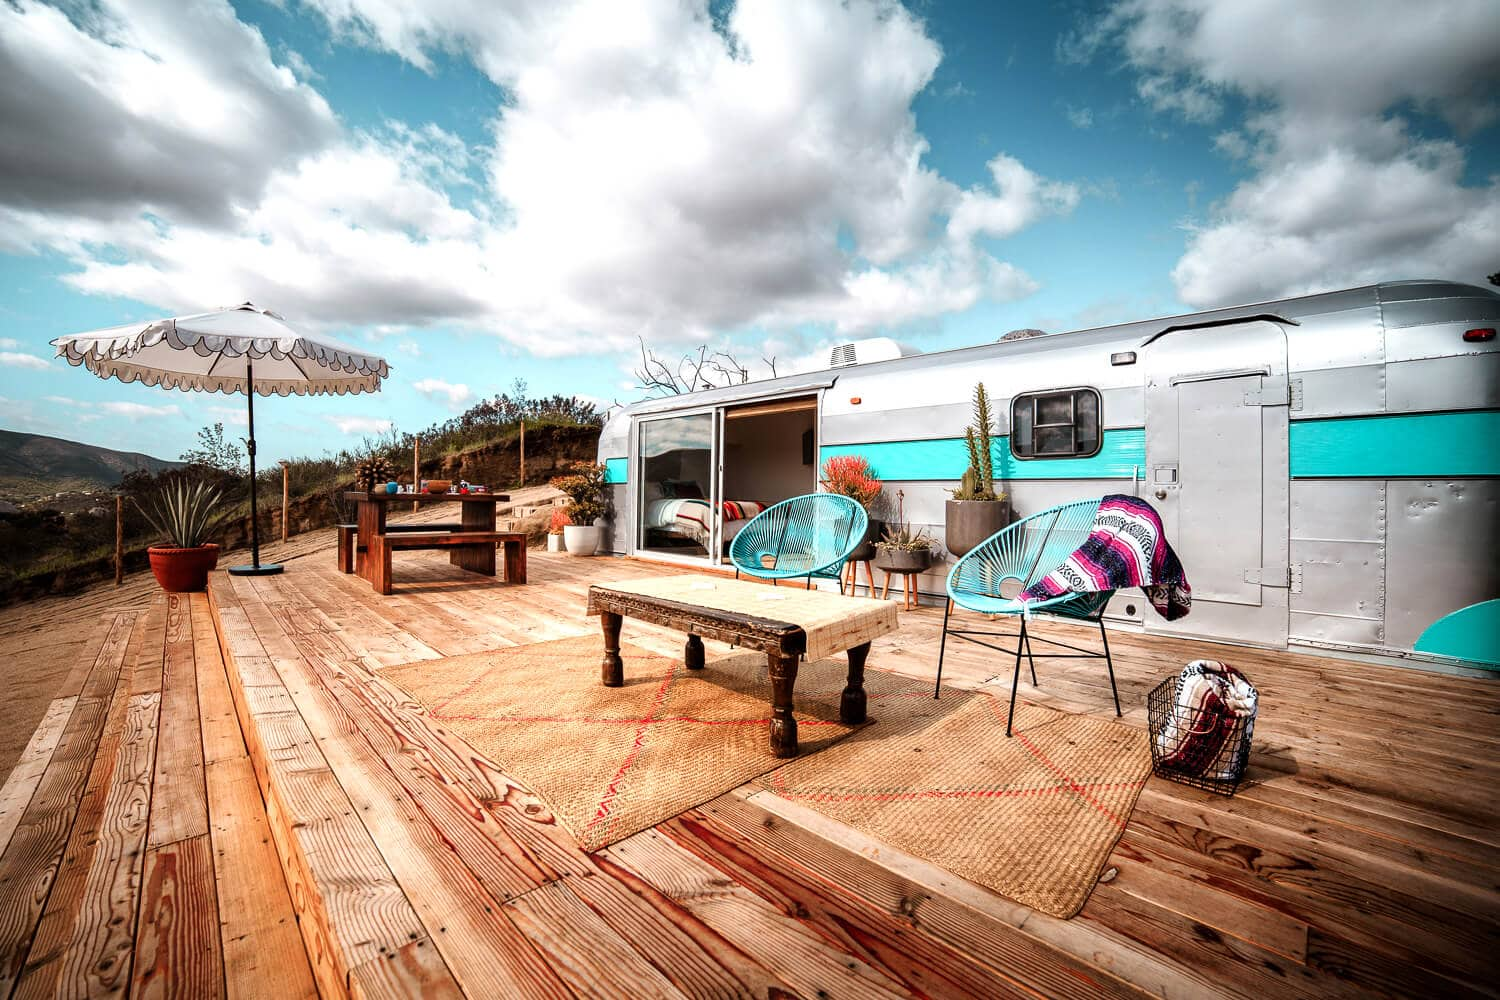 Arre Lulu Baja is a renovated airstream in Valle de Guadalupe, Mexico's wine region. With it's instagrammable decor, large patio, soaking bathtub and valley views, this Airbnb is the perfect, unique place to stay while you're in Baja California. Keep reading for photos and information about our stay!